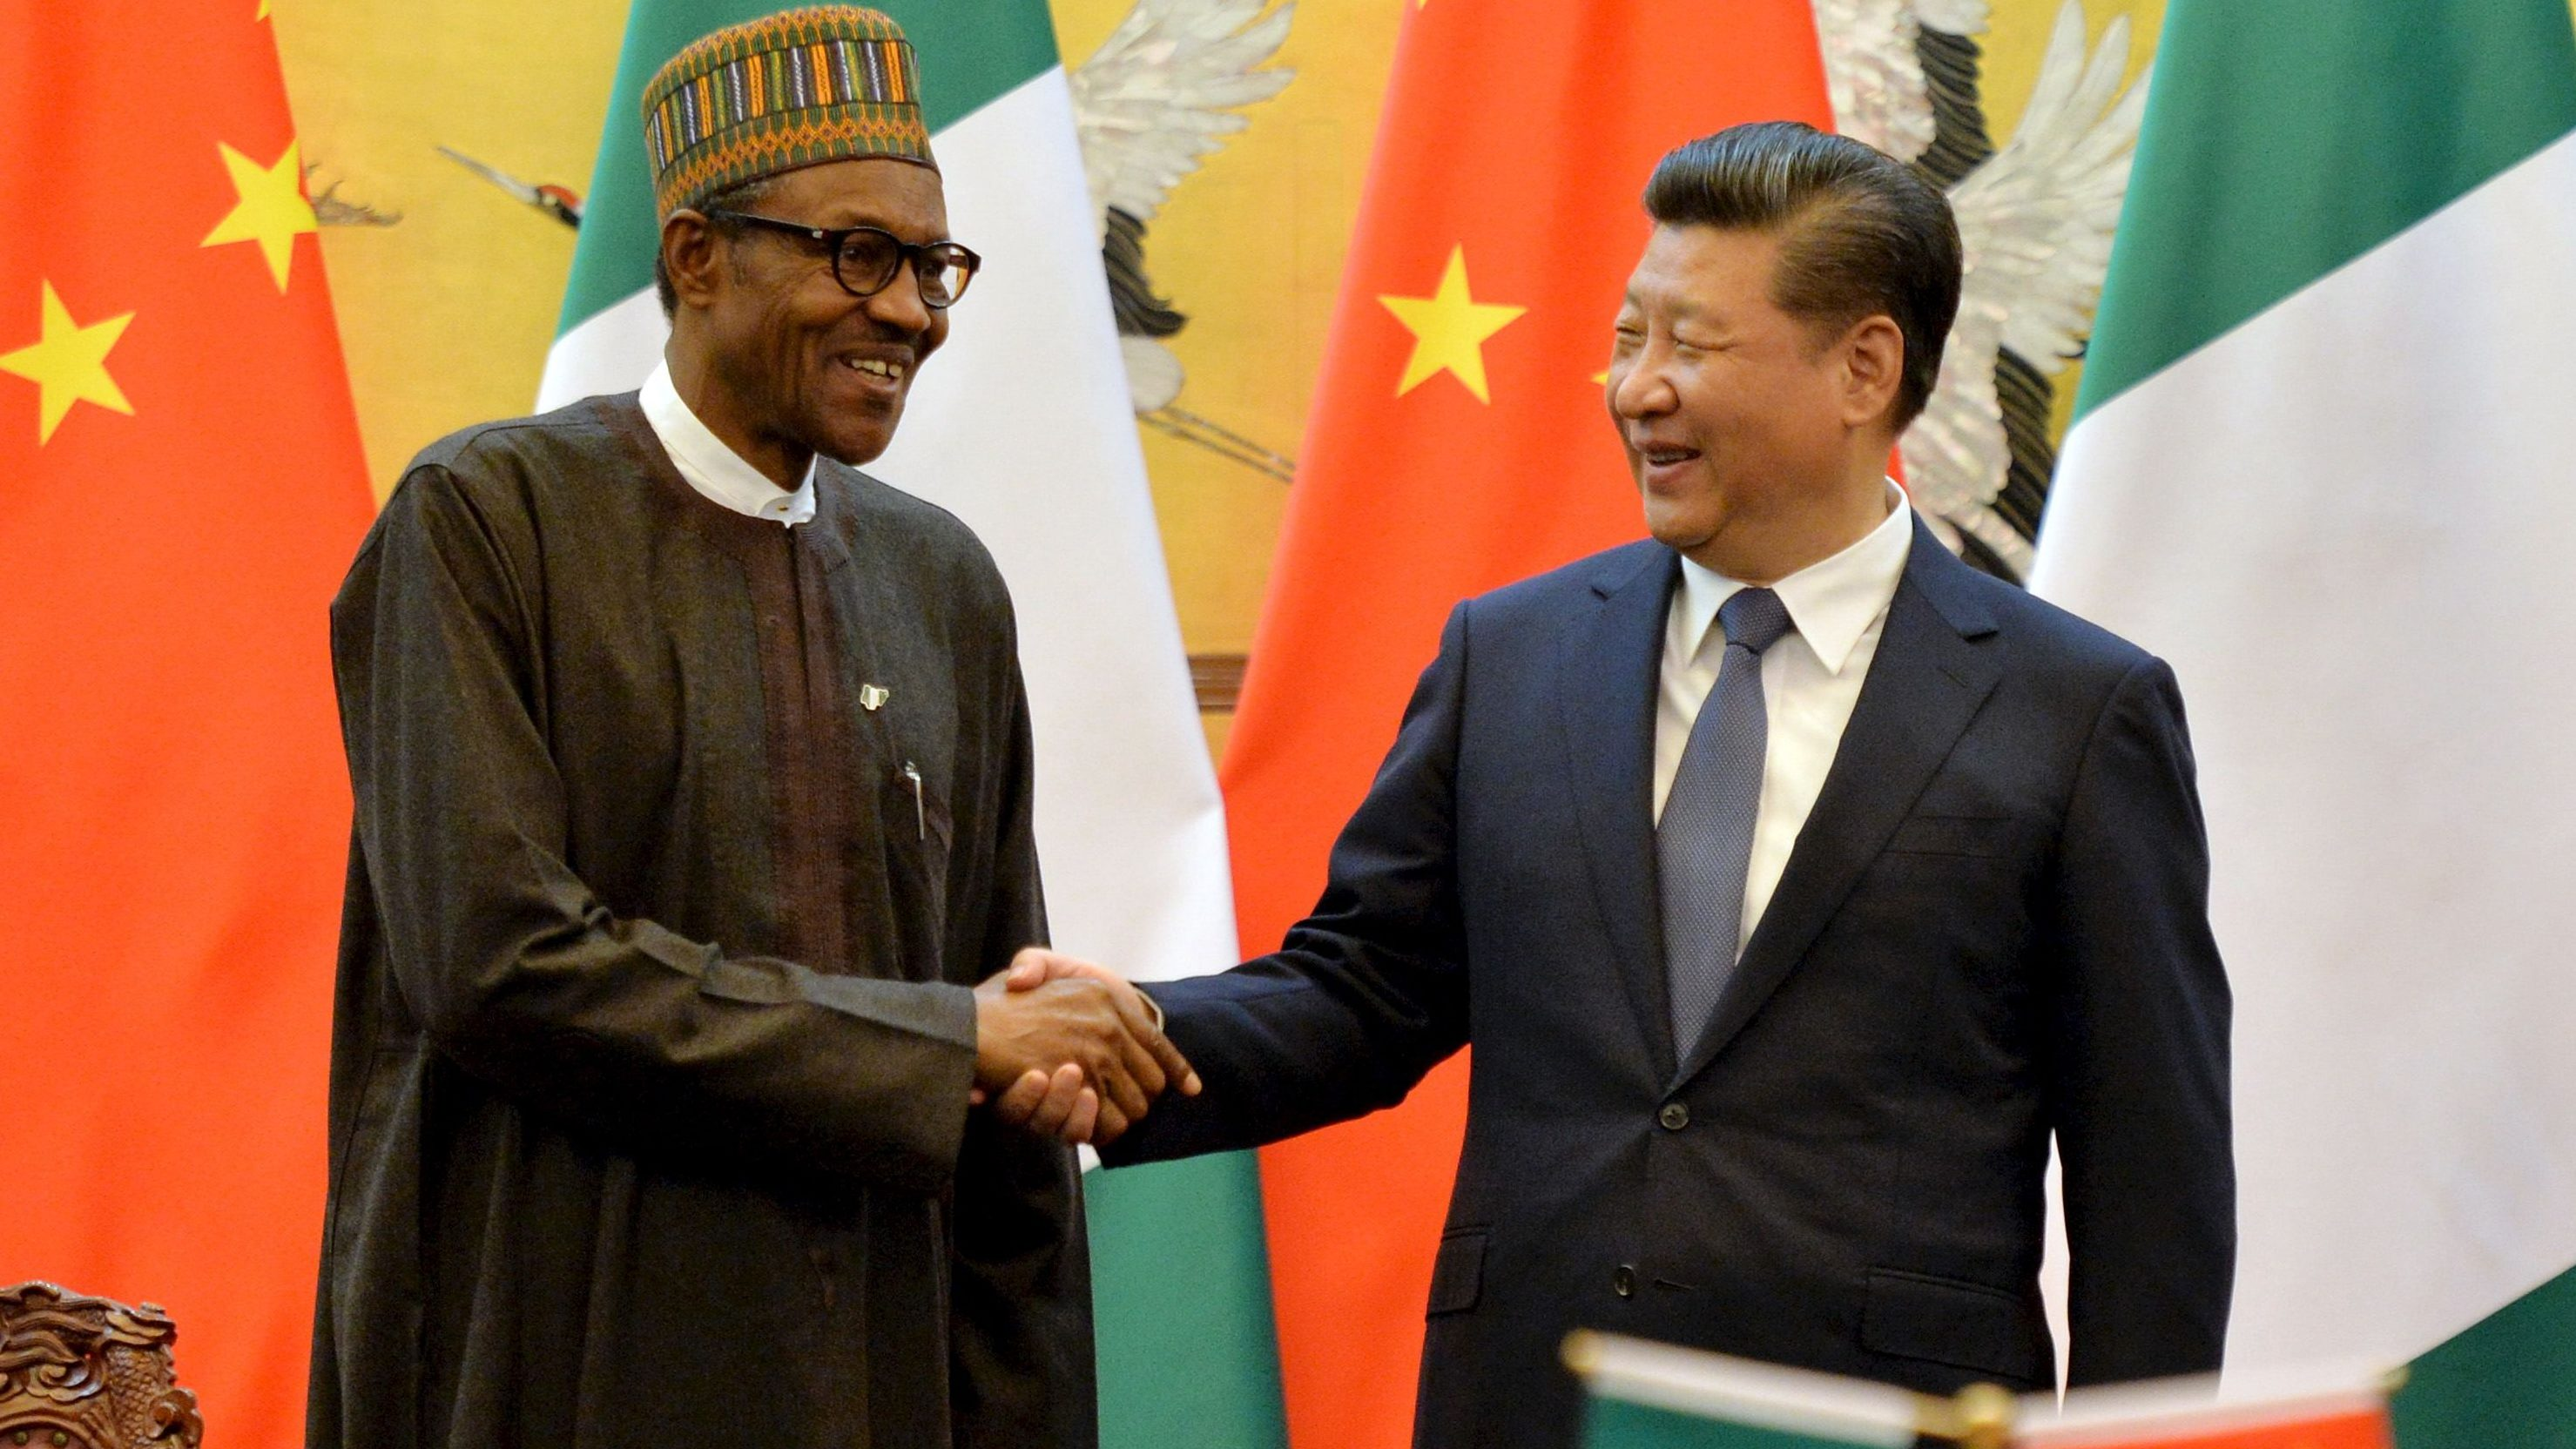 President of the Federal Republic of Nigeria, Muhammadu Buhari and Chinese President, Xi Jinping shake hands during a signing ceremony at the Great Hall of the People in Beijing